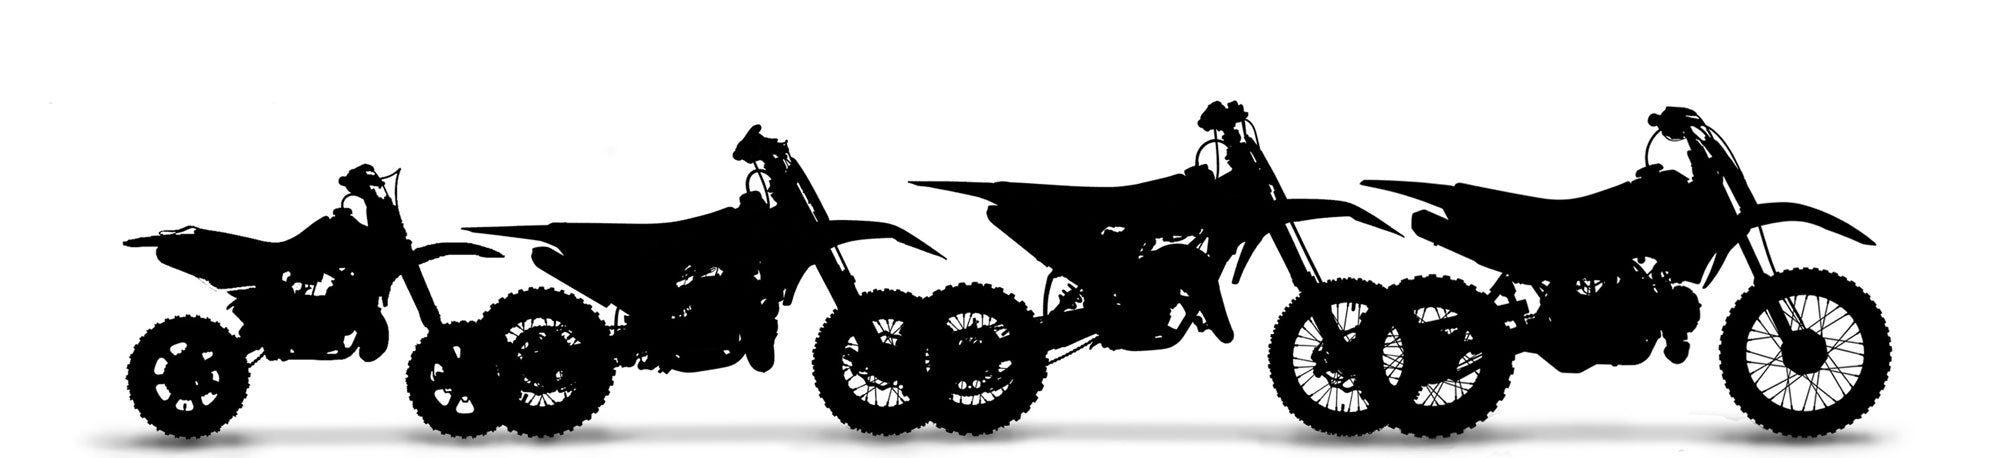 Lock-N-Load Pro Mini Bike Sizes